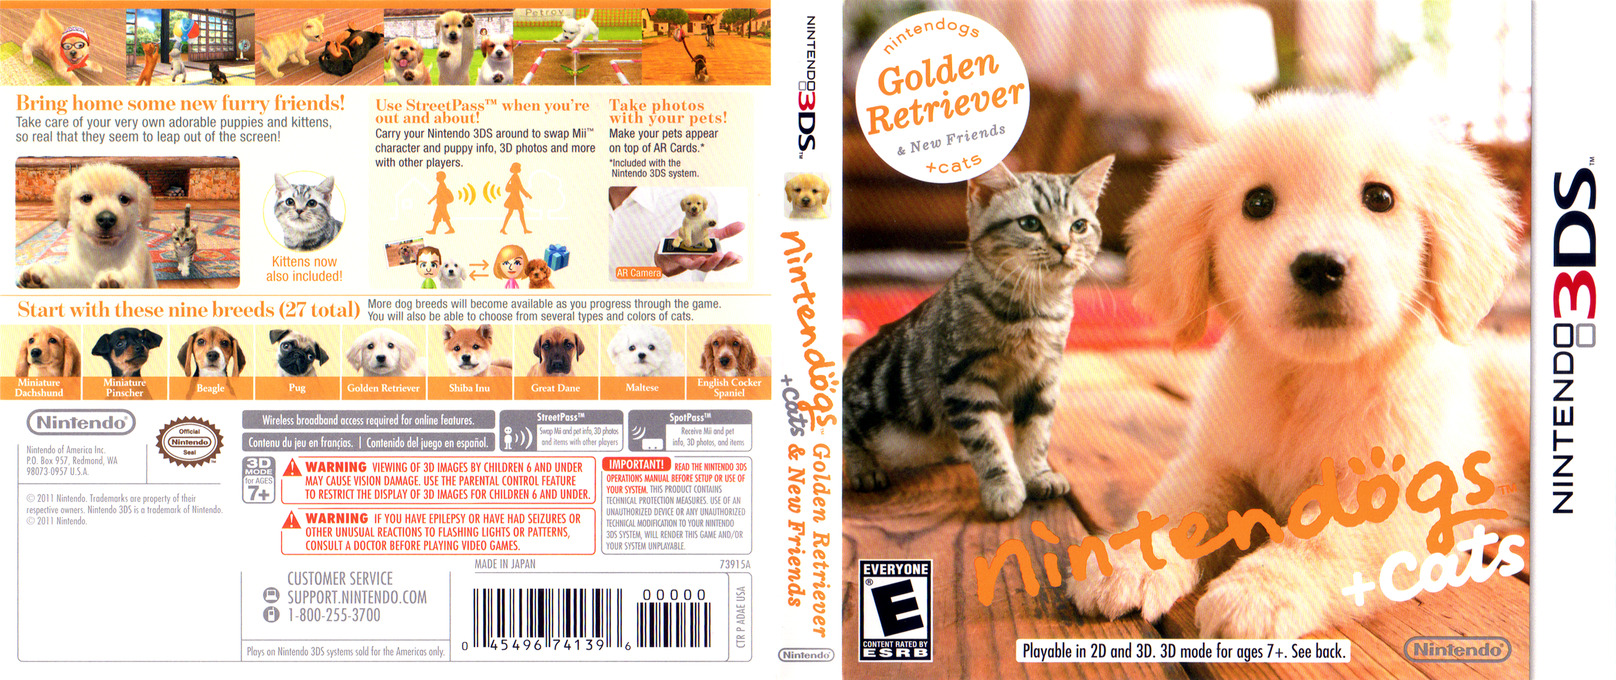 Nintendogs + Cats - Golden Retriever & New Friends 3DS coverfullHQ (ADAE)